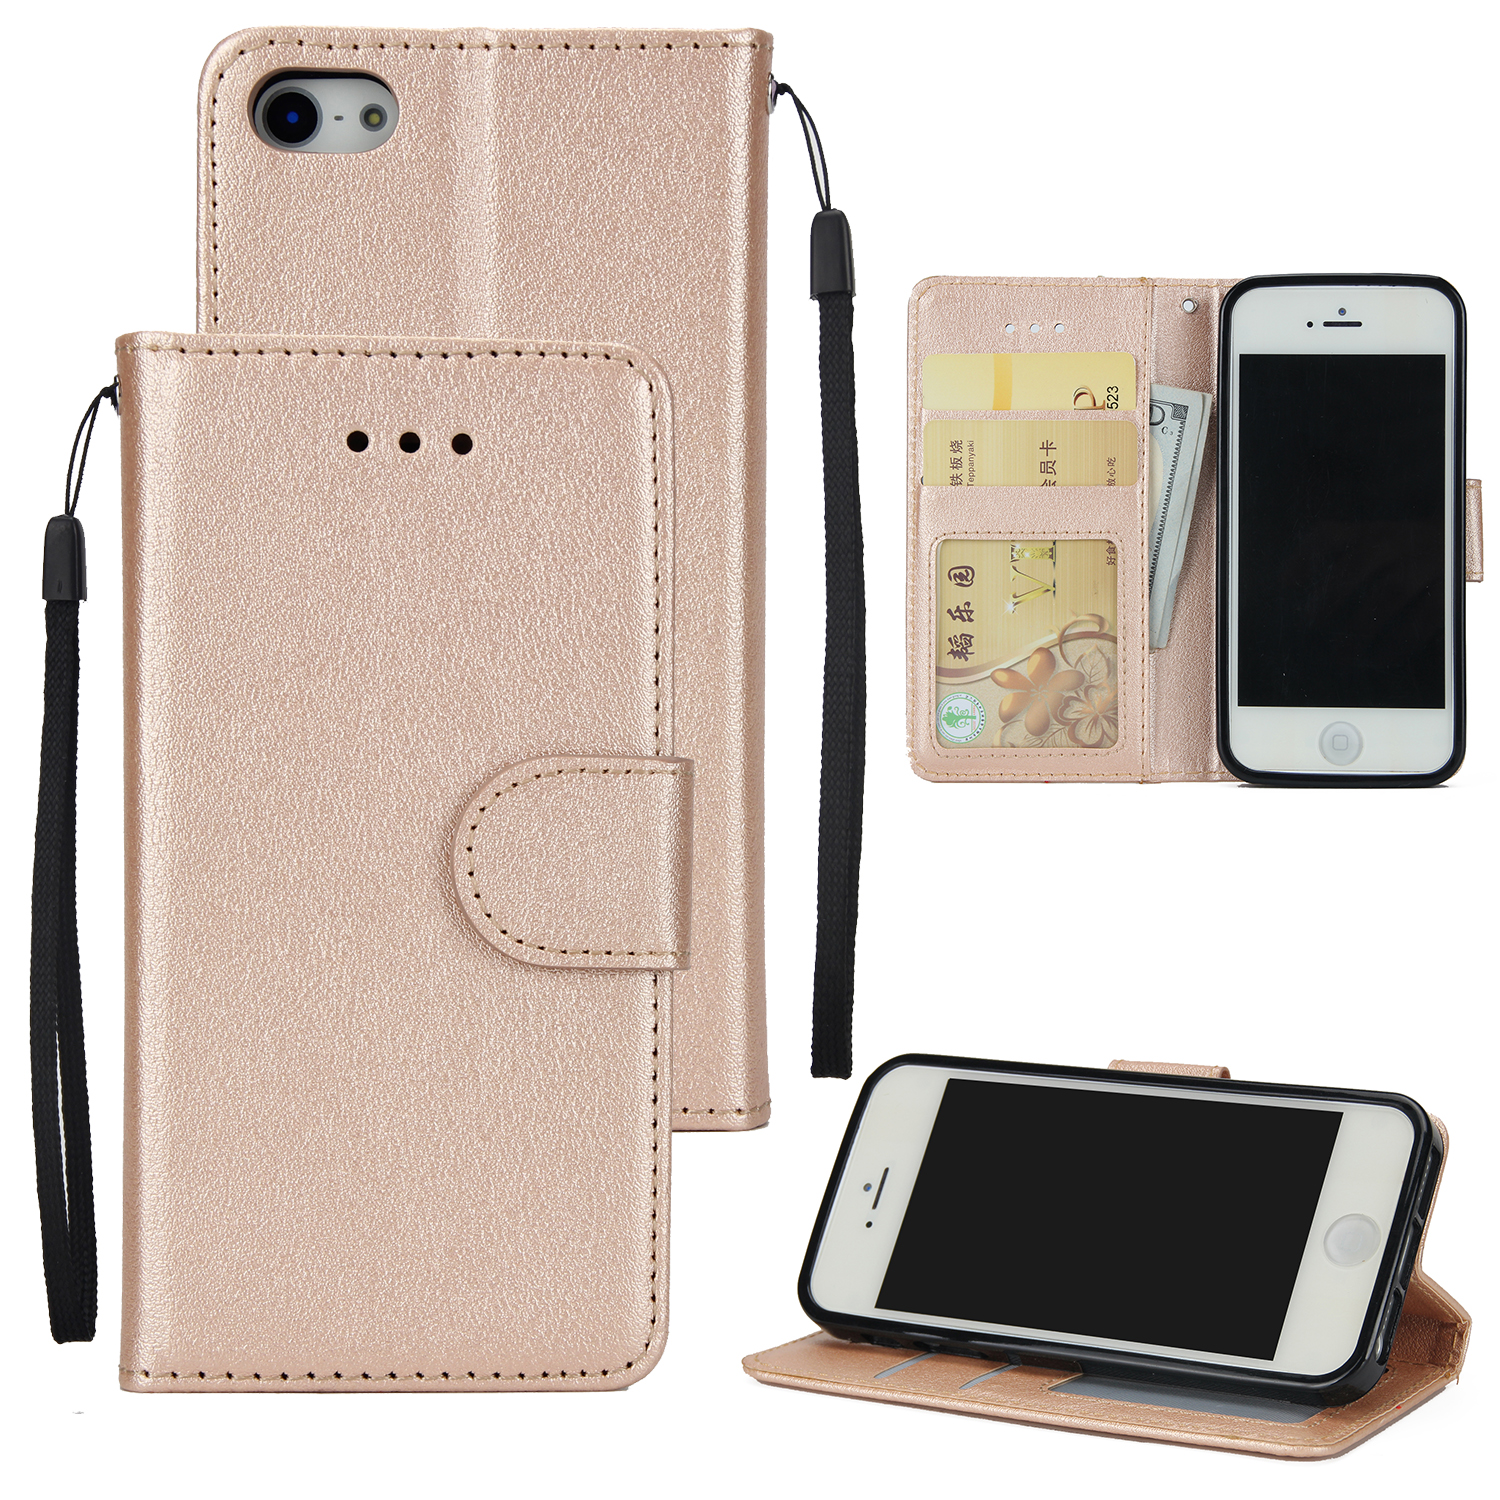 Ultra Slim PU Full Protective Cover Non-slip Shockproof Cell Phone Case with Card Slot for iPhone 5G/5S/5SE Golden